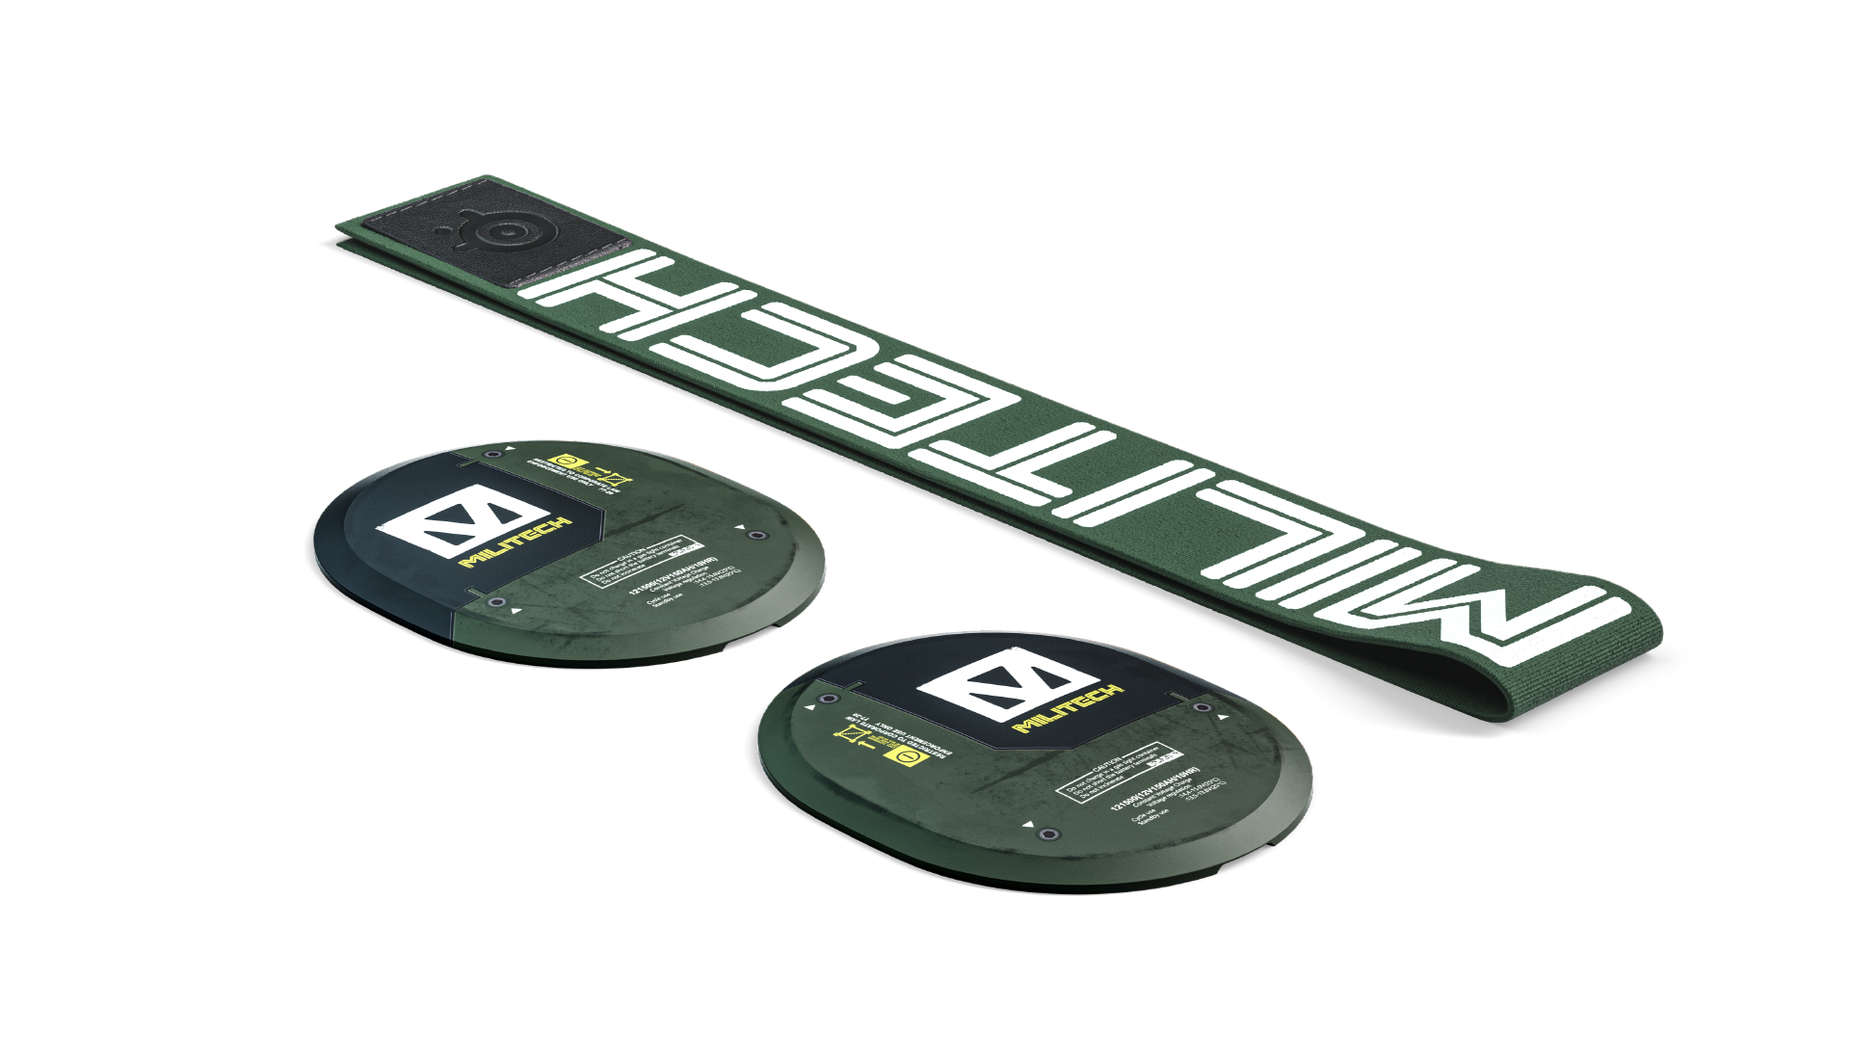 The Militech booster pack items are shown laying flat. Two ear cup plates and one ski goggle headband.